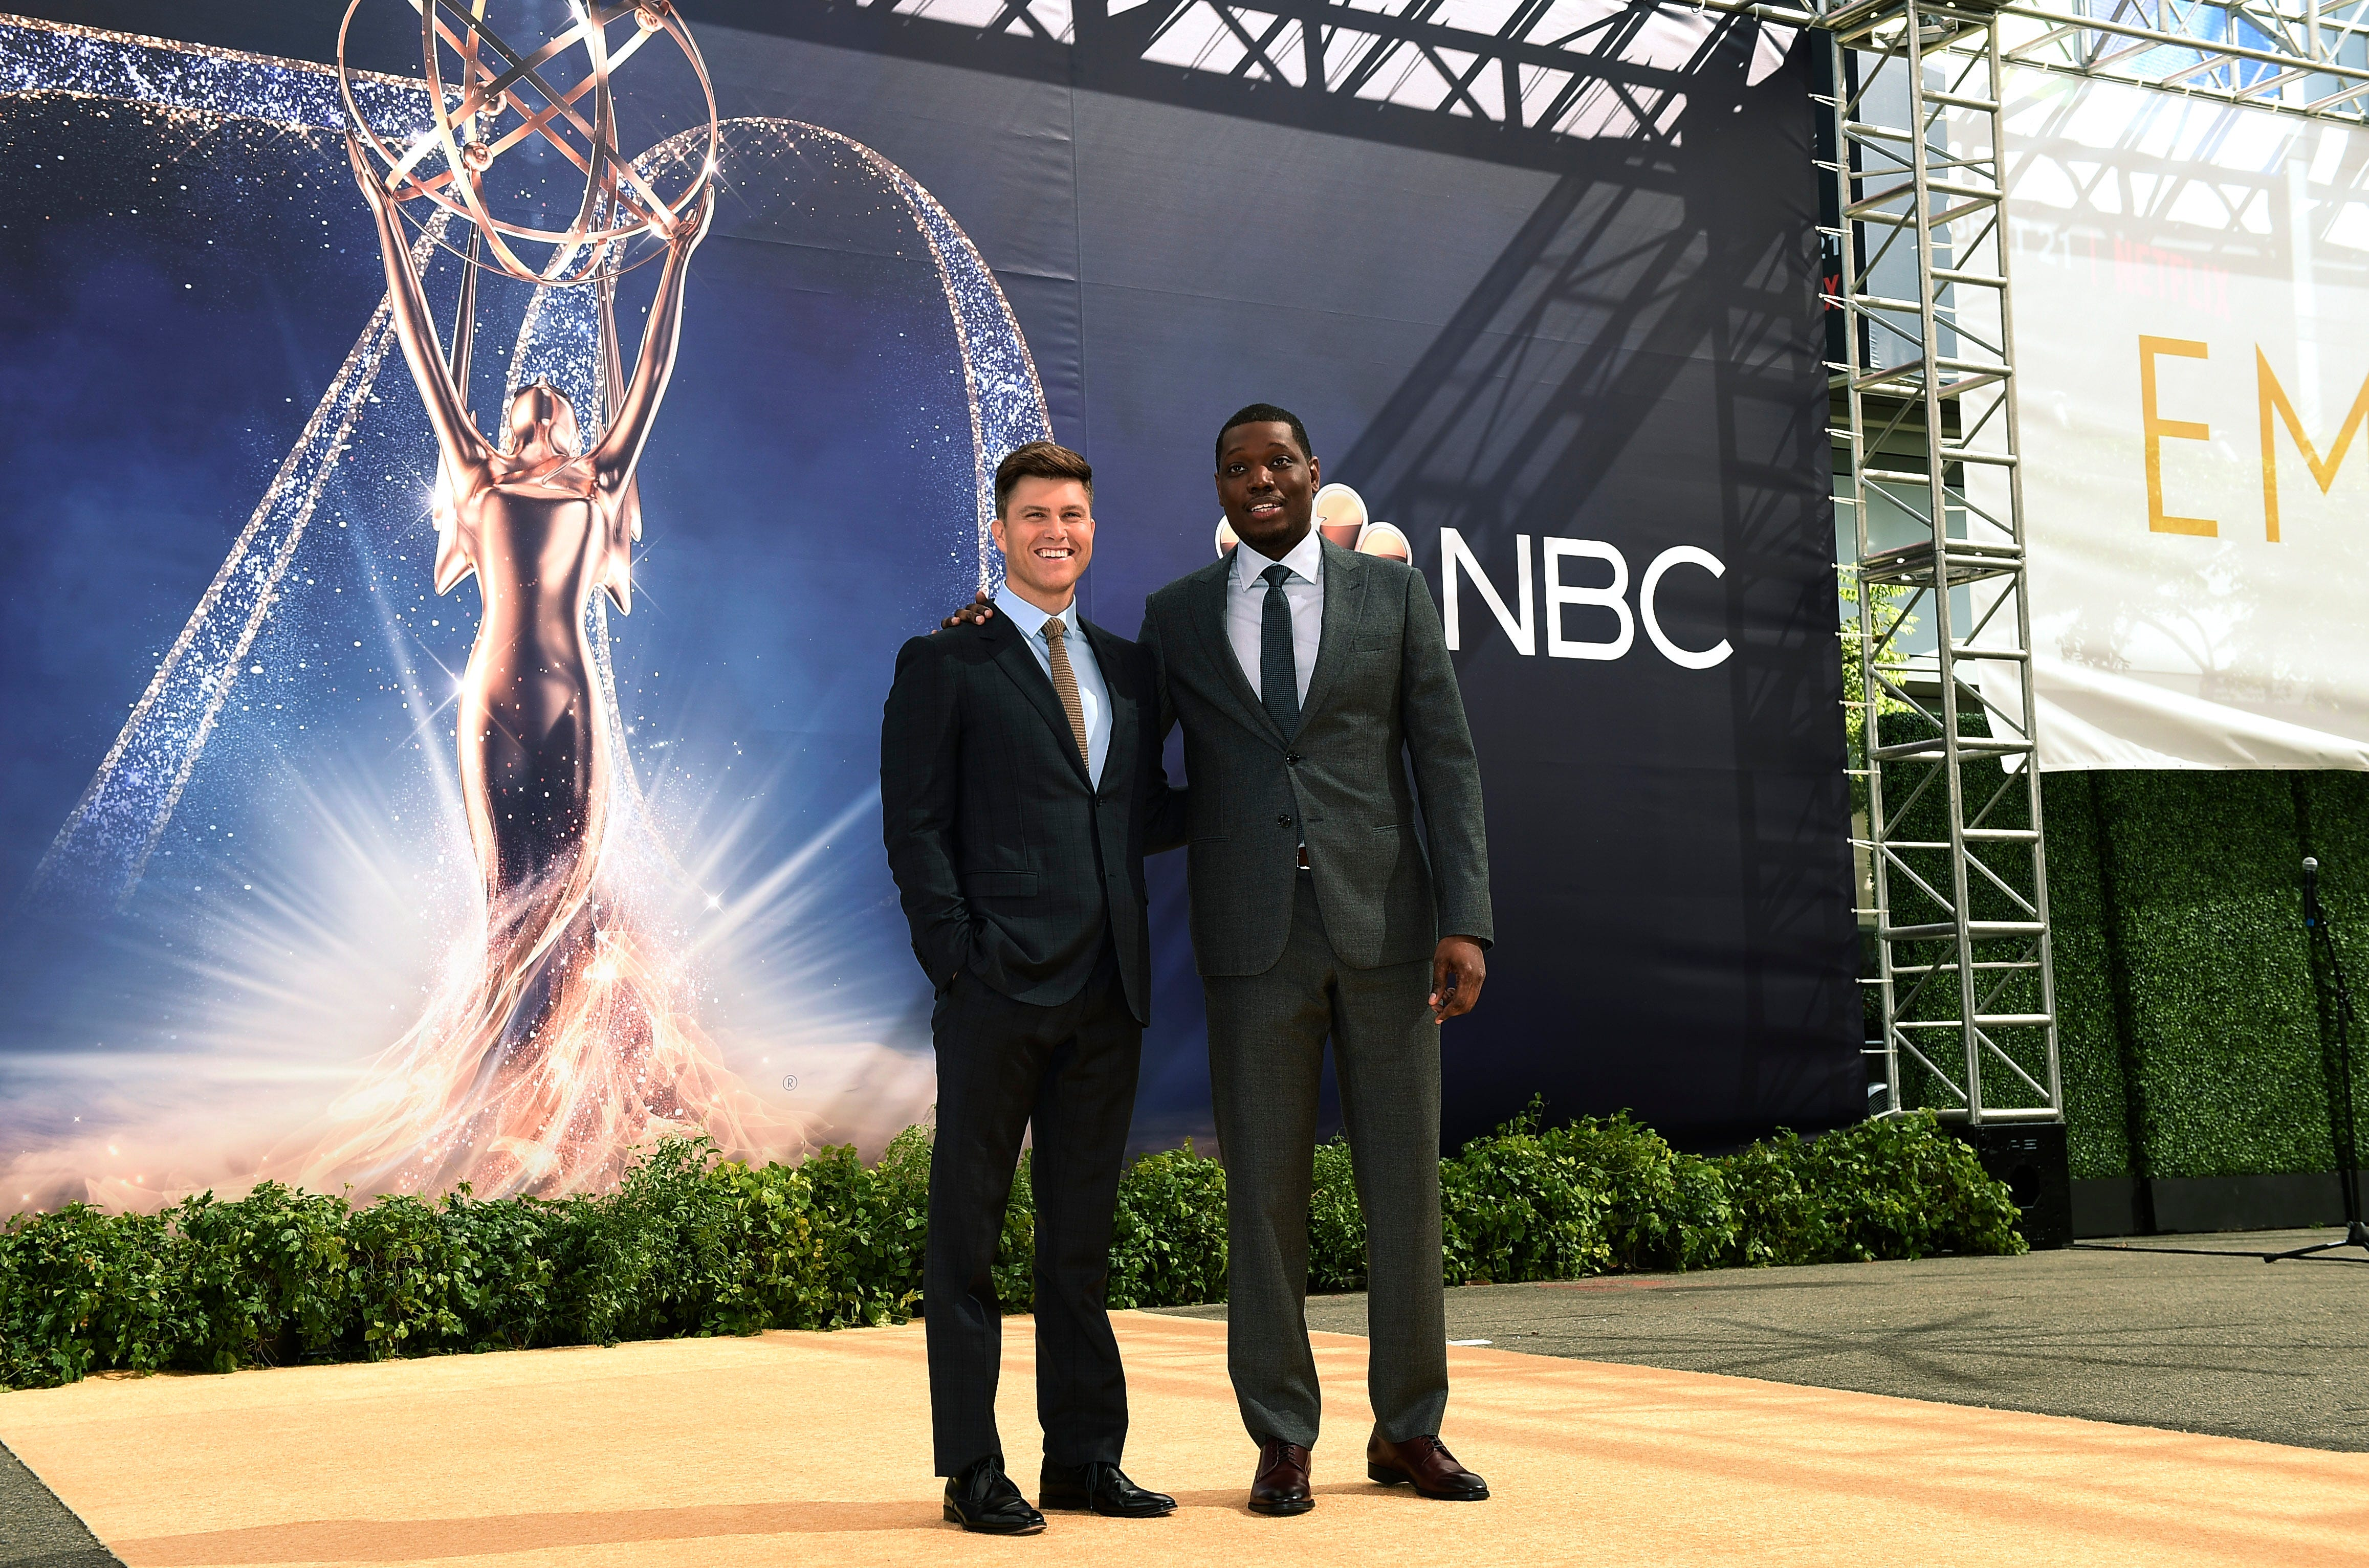 Emmys 2018: Colin Jost and Michael Che on how they'll bring the funny and give the gold